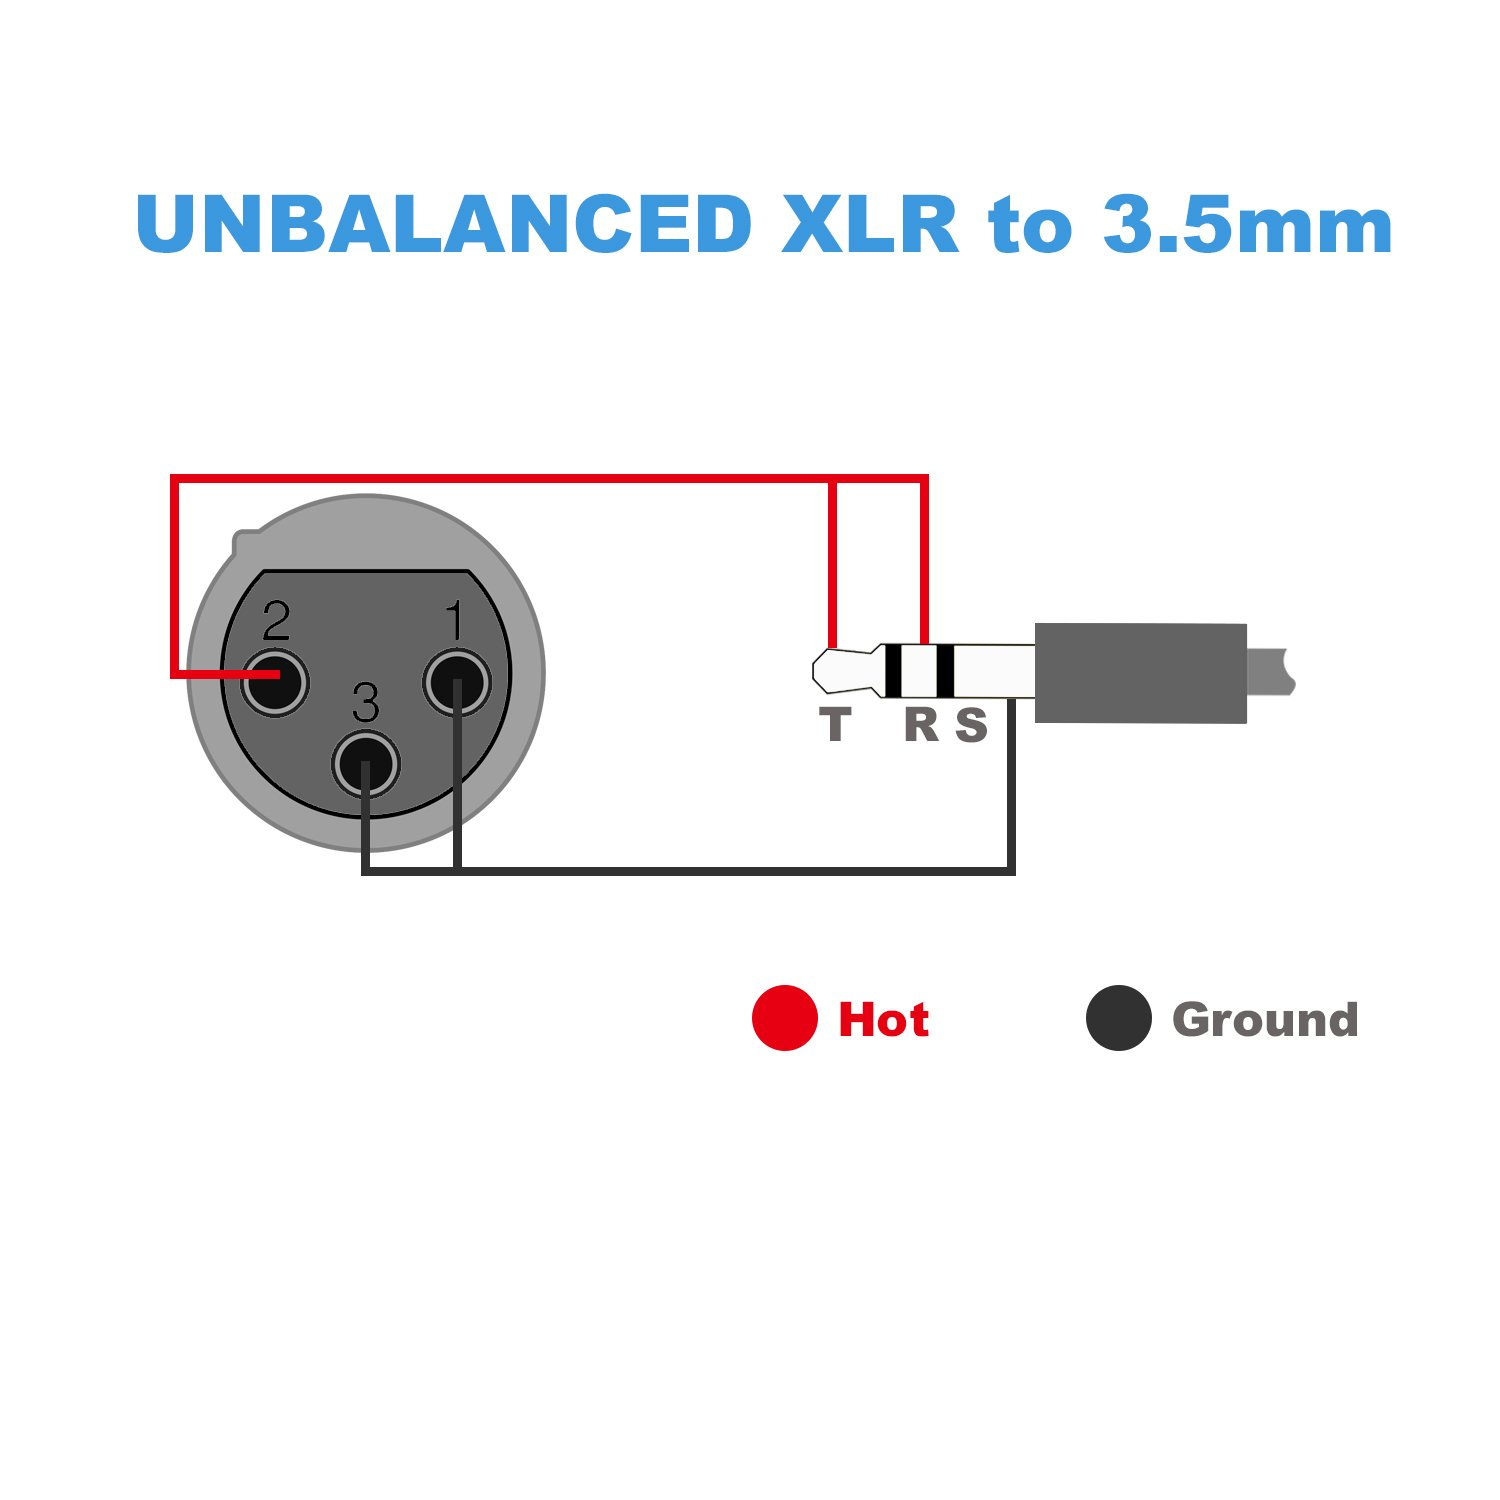 Xlr To 3 5mm 4 Point Diagram Electrical Wiring Diagrams Trs Amazon Com Jolgoo Unbalanced 1 8 Inch Audio Plug Male Balanced Schematic